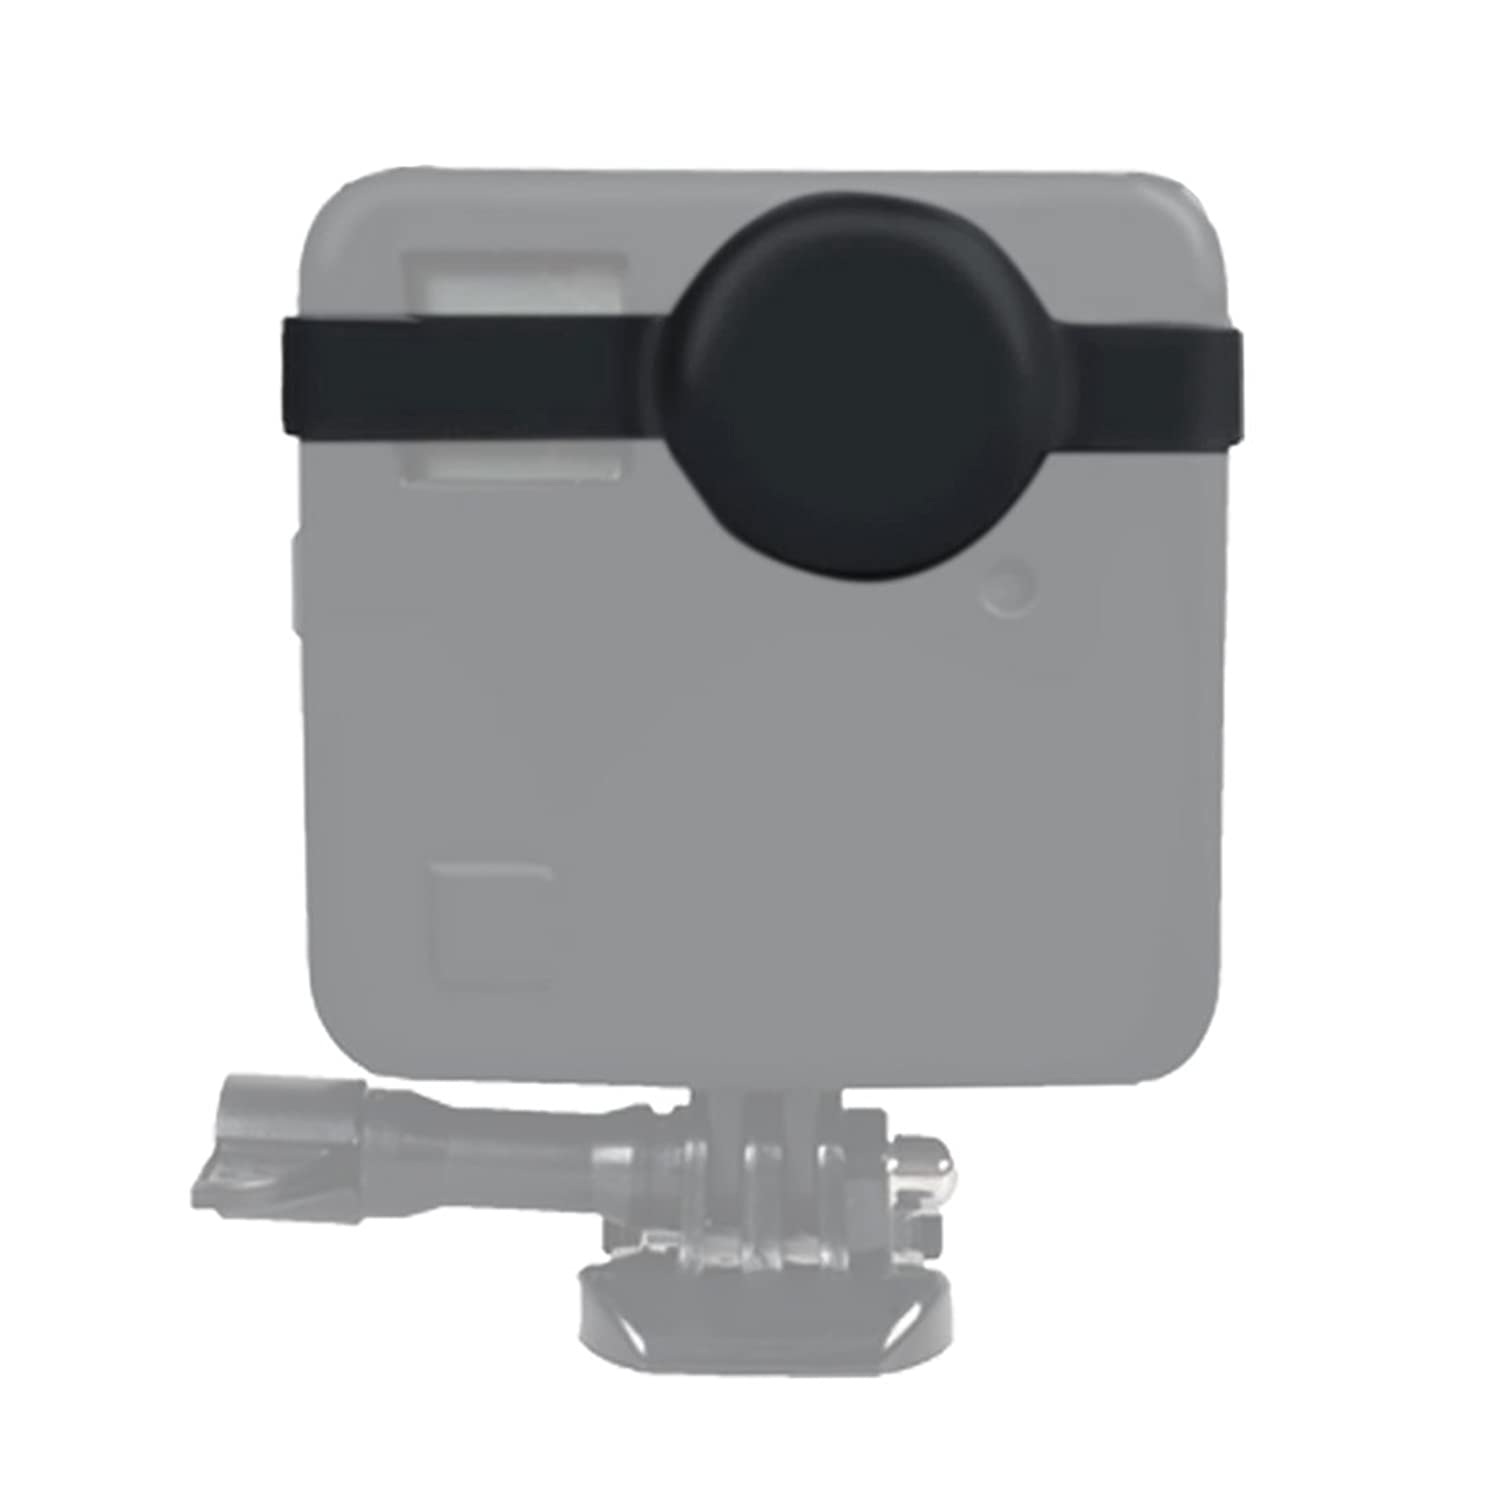 for DJI Gopro Action Camera, for GoPro Fusion Dual Lens Silicone Protective Case(Black) (Color : Black)